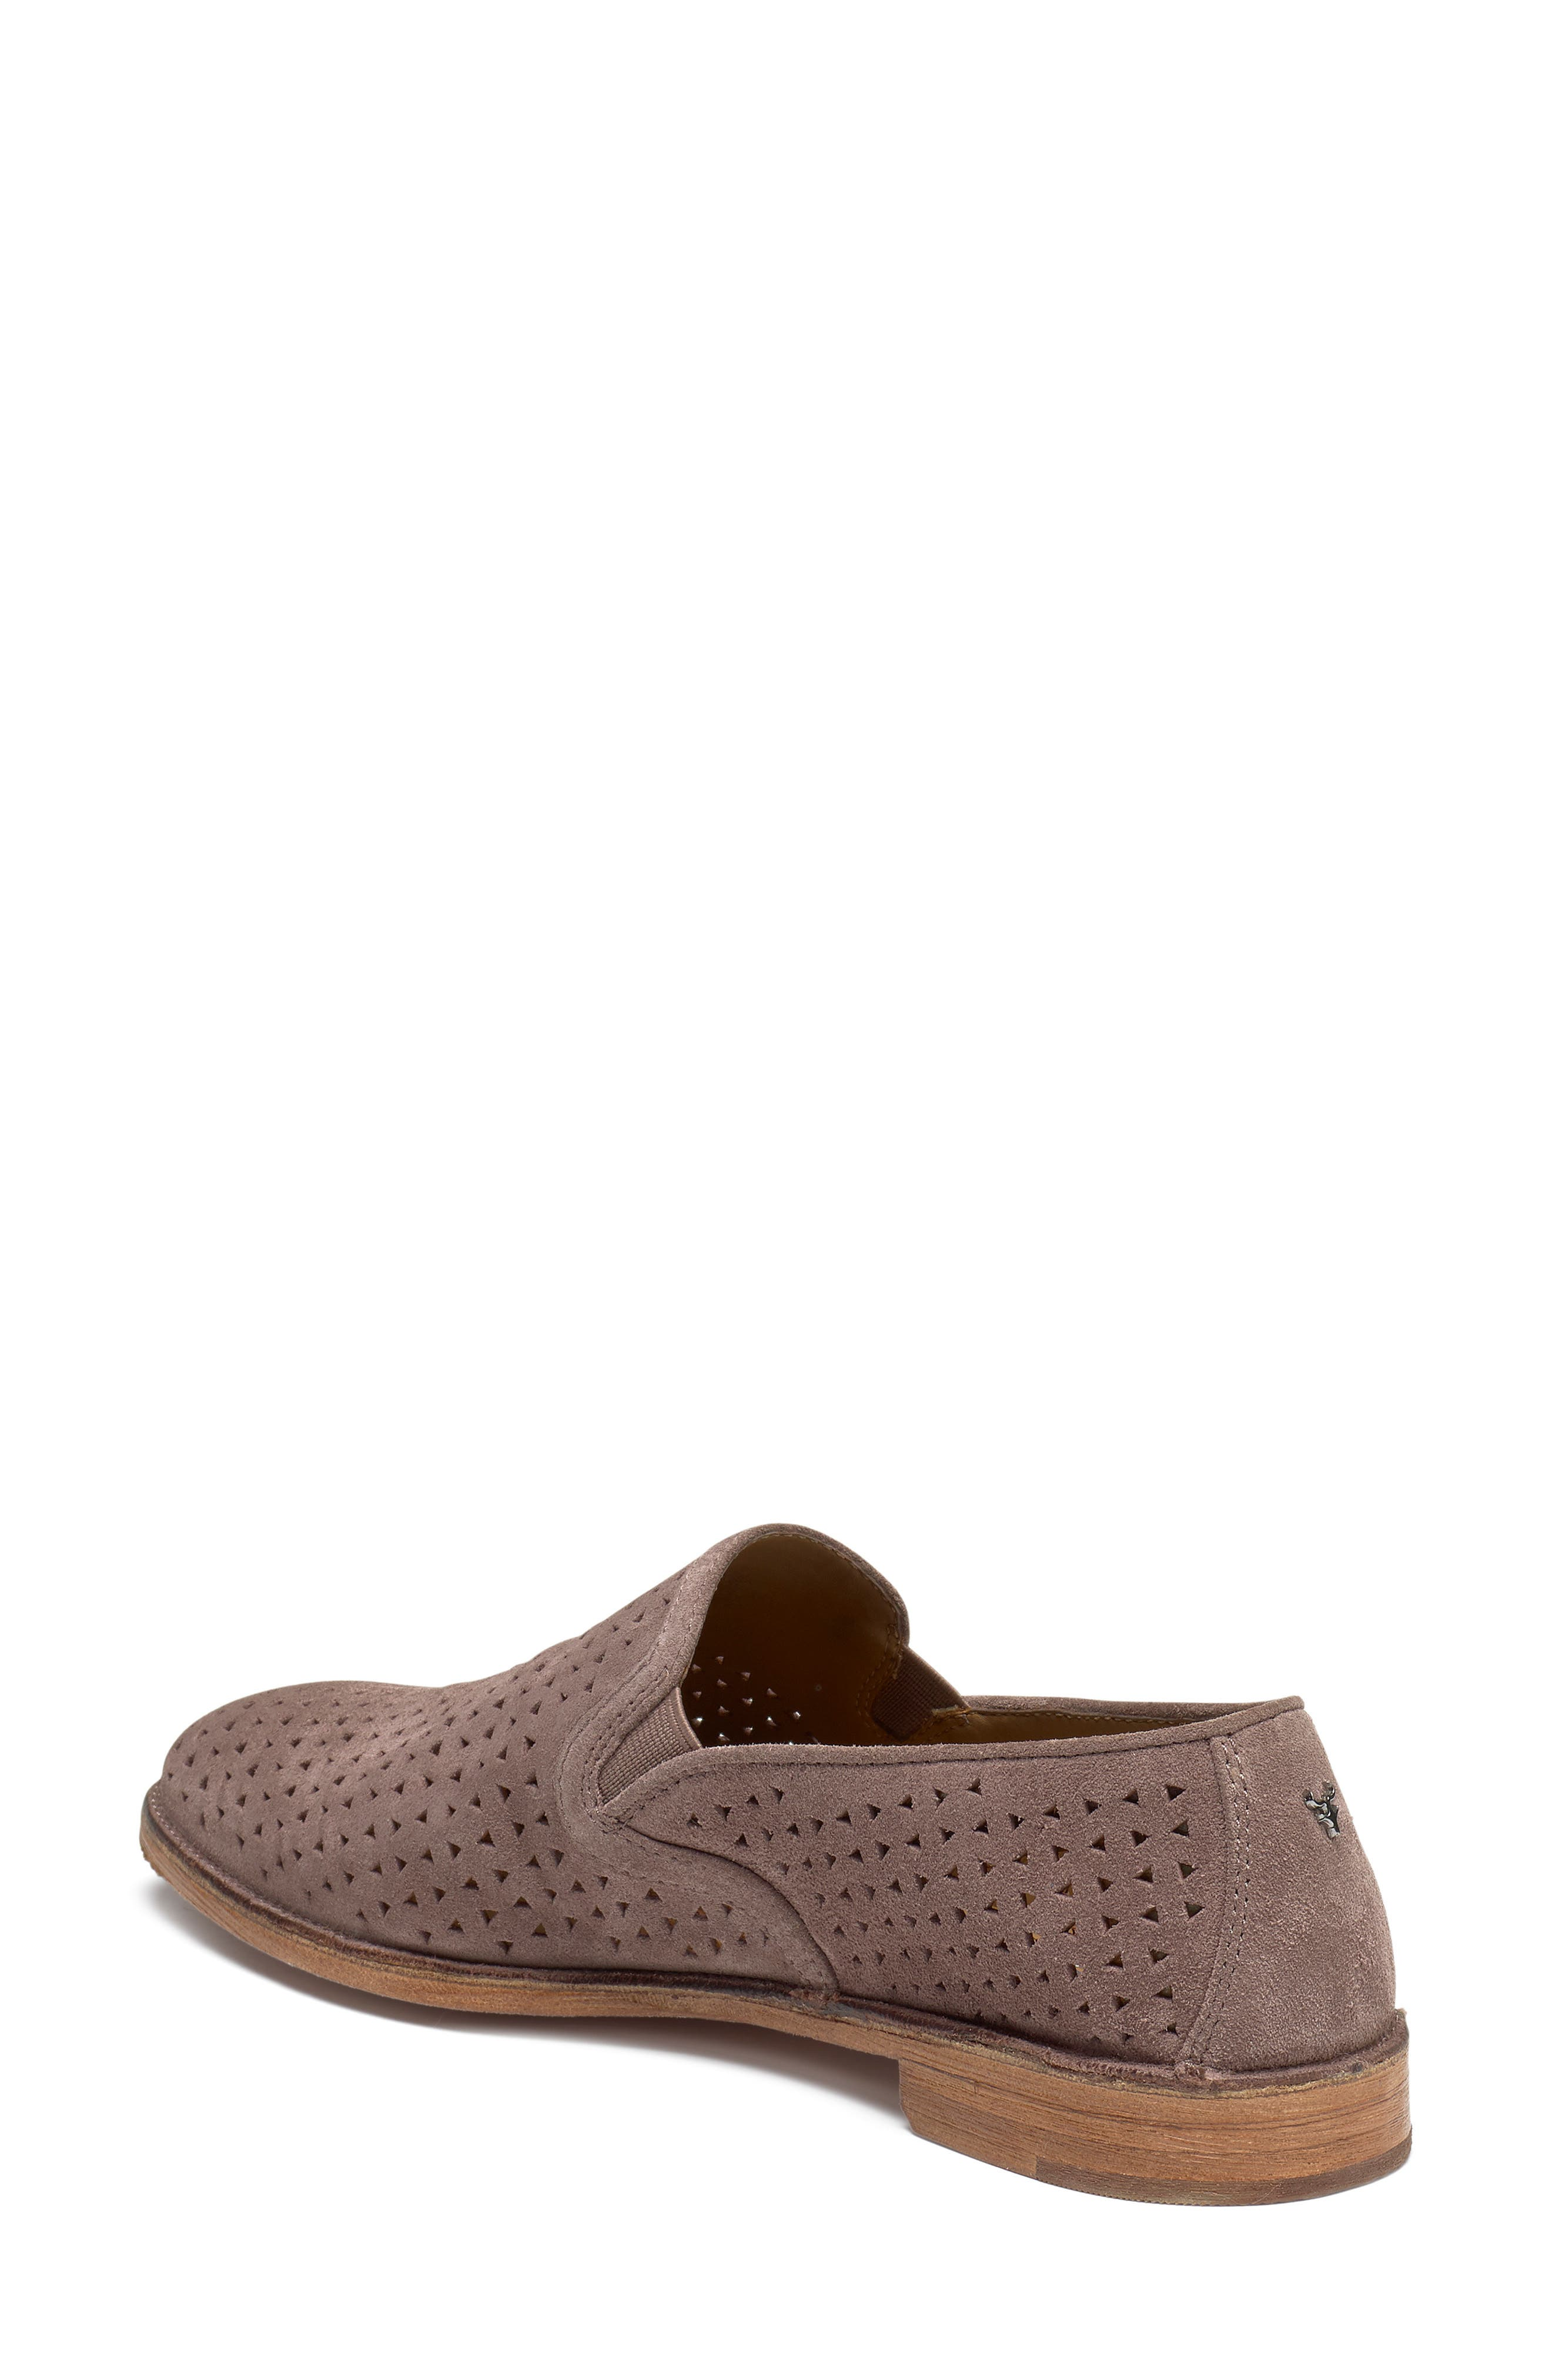 TRASK, Ali Perforated Loafer, Alternate thumbnail 2, color, BLUSH SUEDE